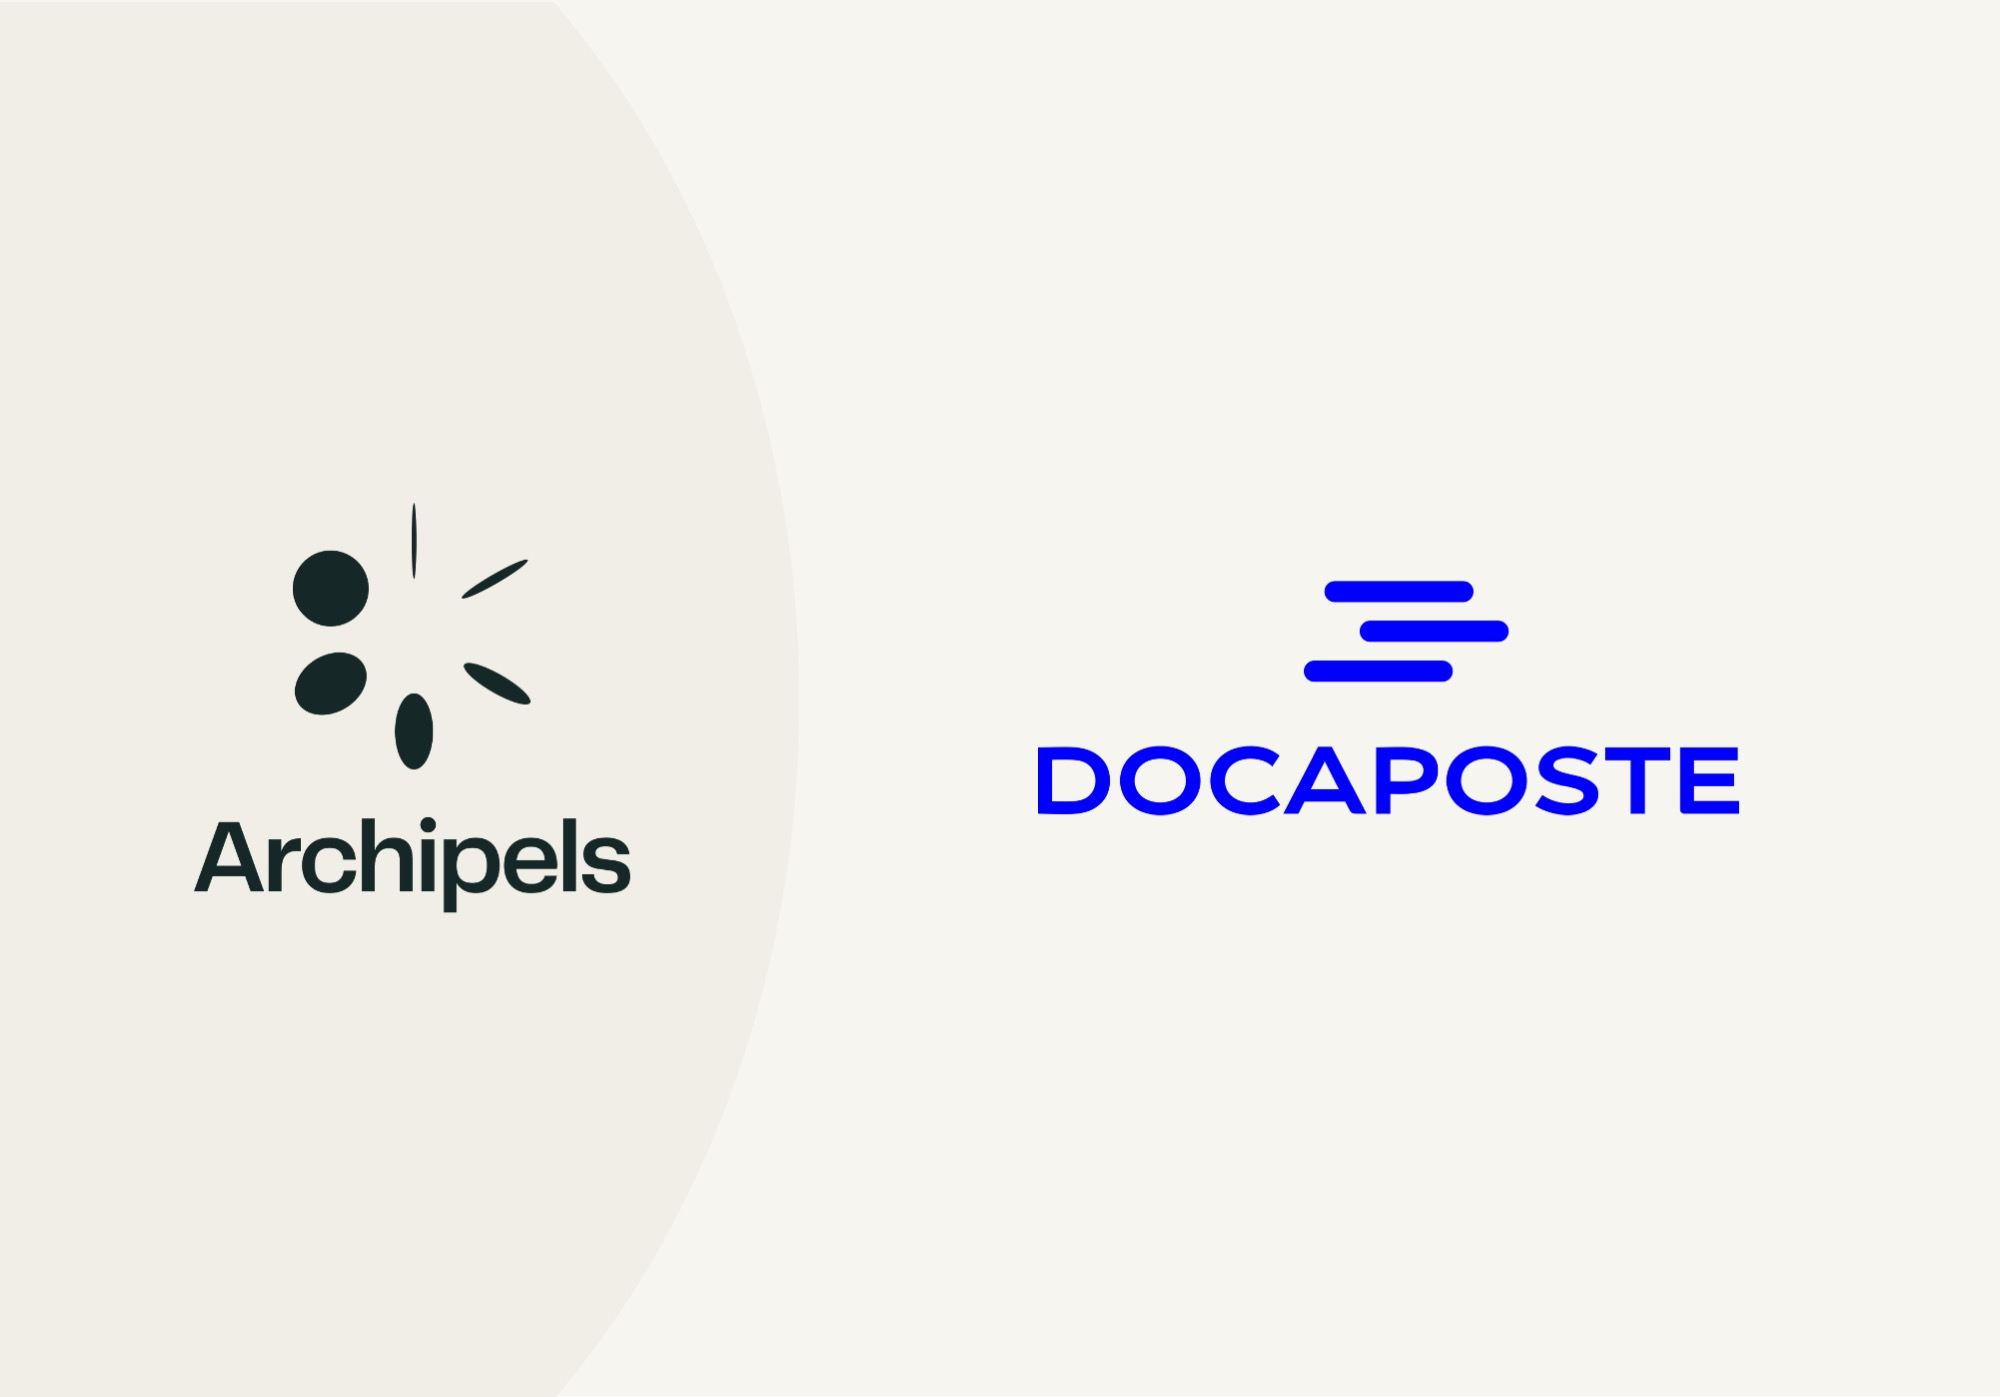 Docapost integrates Archipels' blockchain to optimise its KYC (customer knowledge) offer